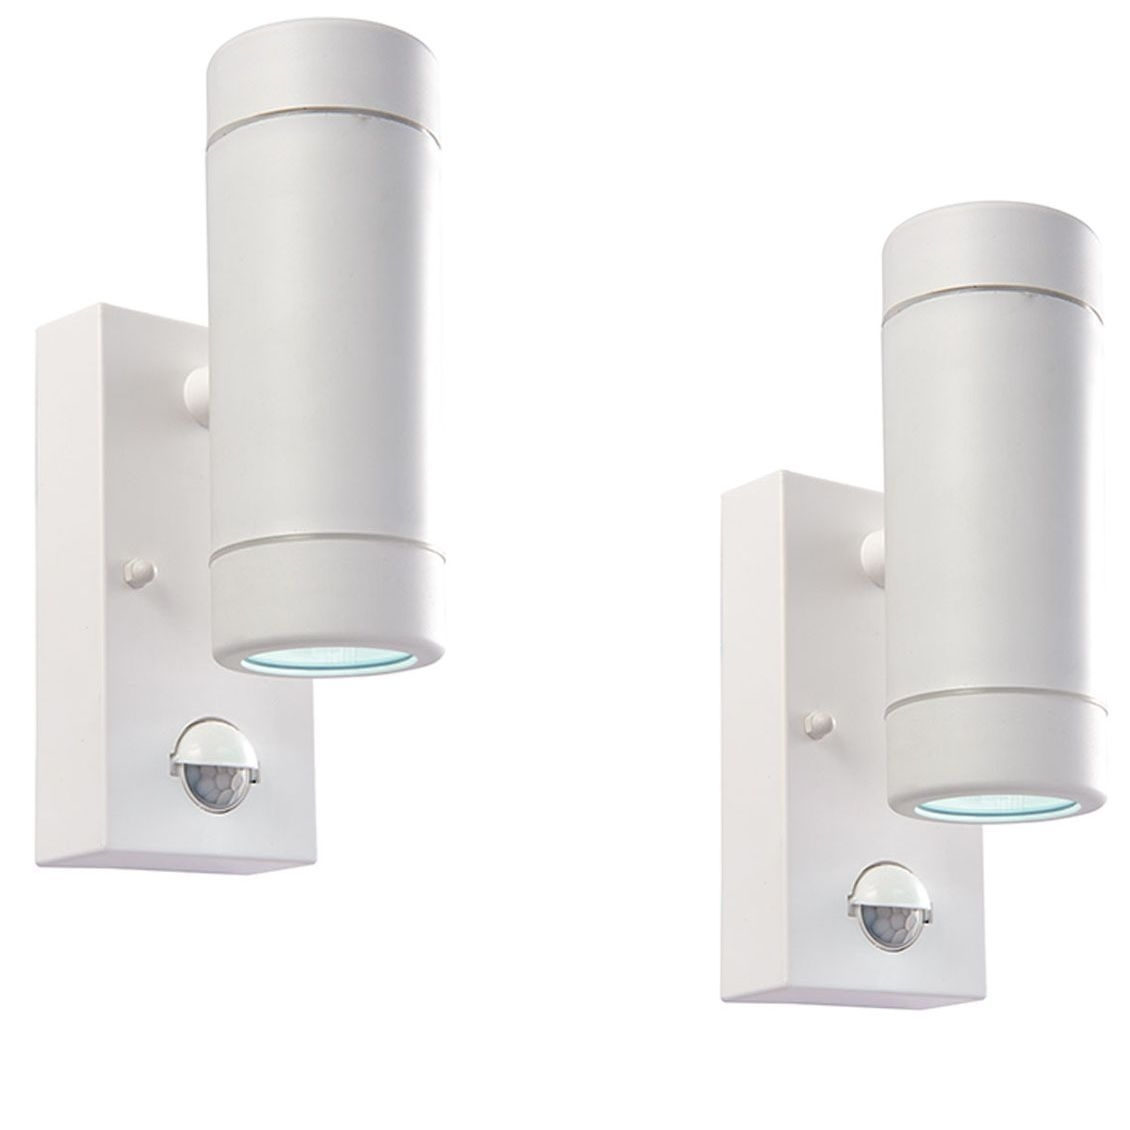 Inspiration about Pair Saxby 61007 Icarus Pir White 2.4W Up Down Led Outdoor Wall Light With Regard To Outdoor Up Down Wall Led Lights (#11 of 15)